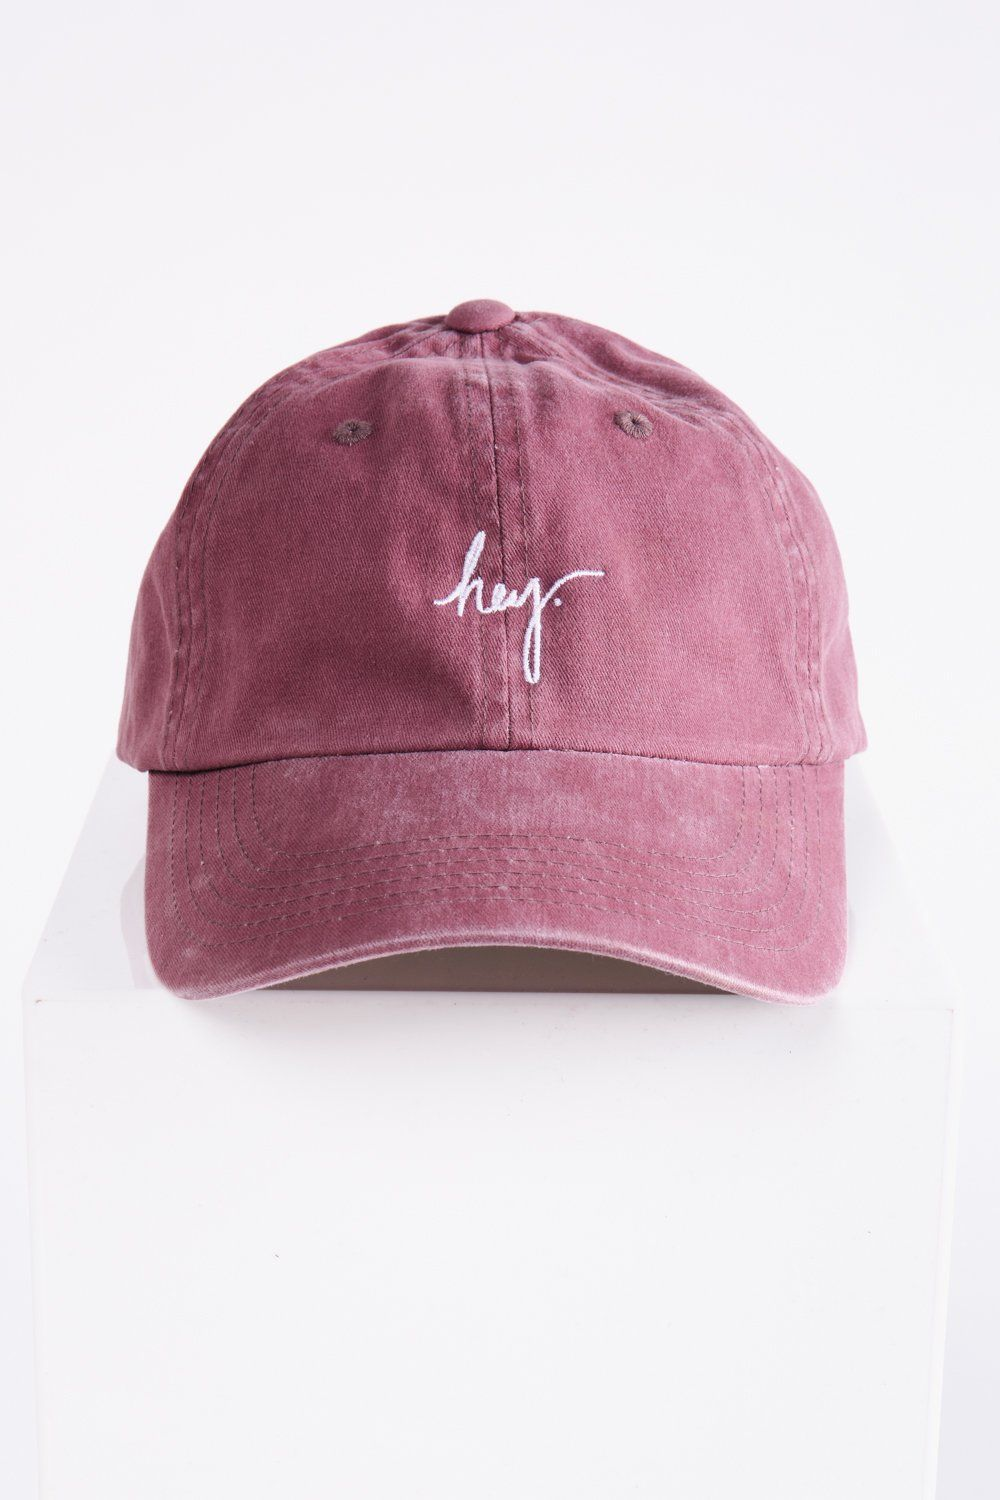 c4d01141ce1cba Piper & Scoot: The hey. Cap in Faded Burgundy | jewelry | Hats ...